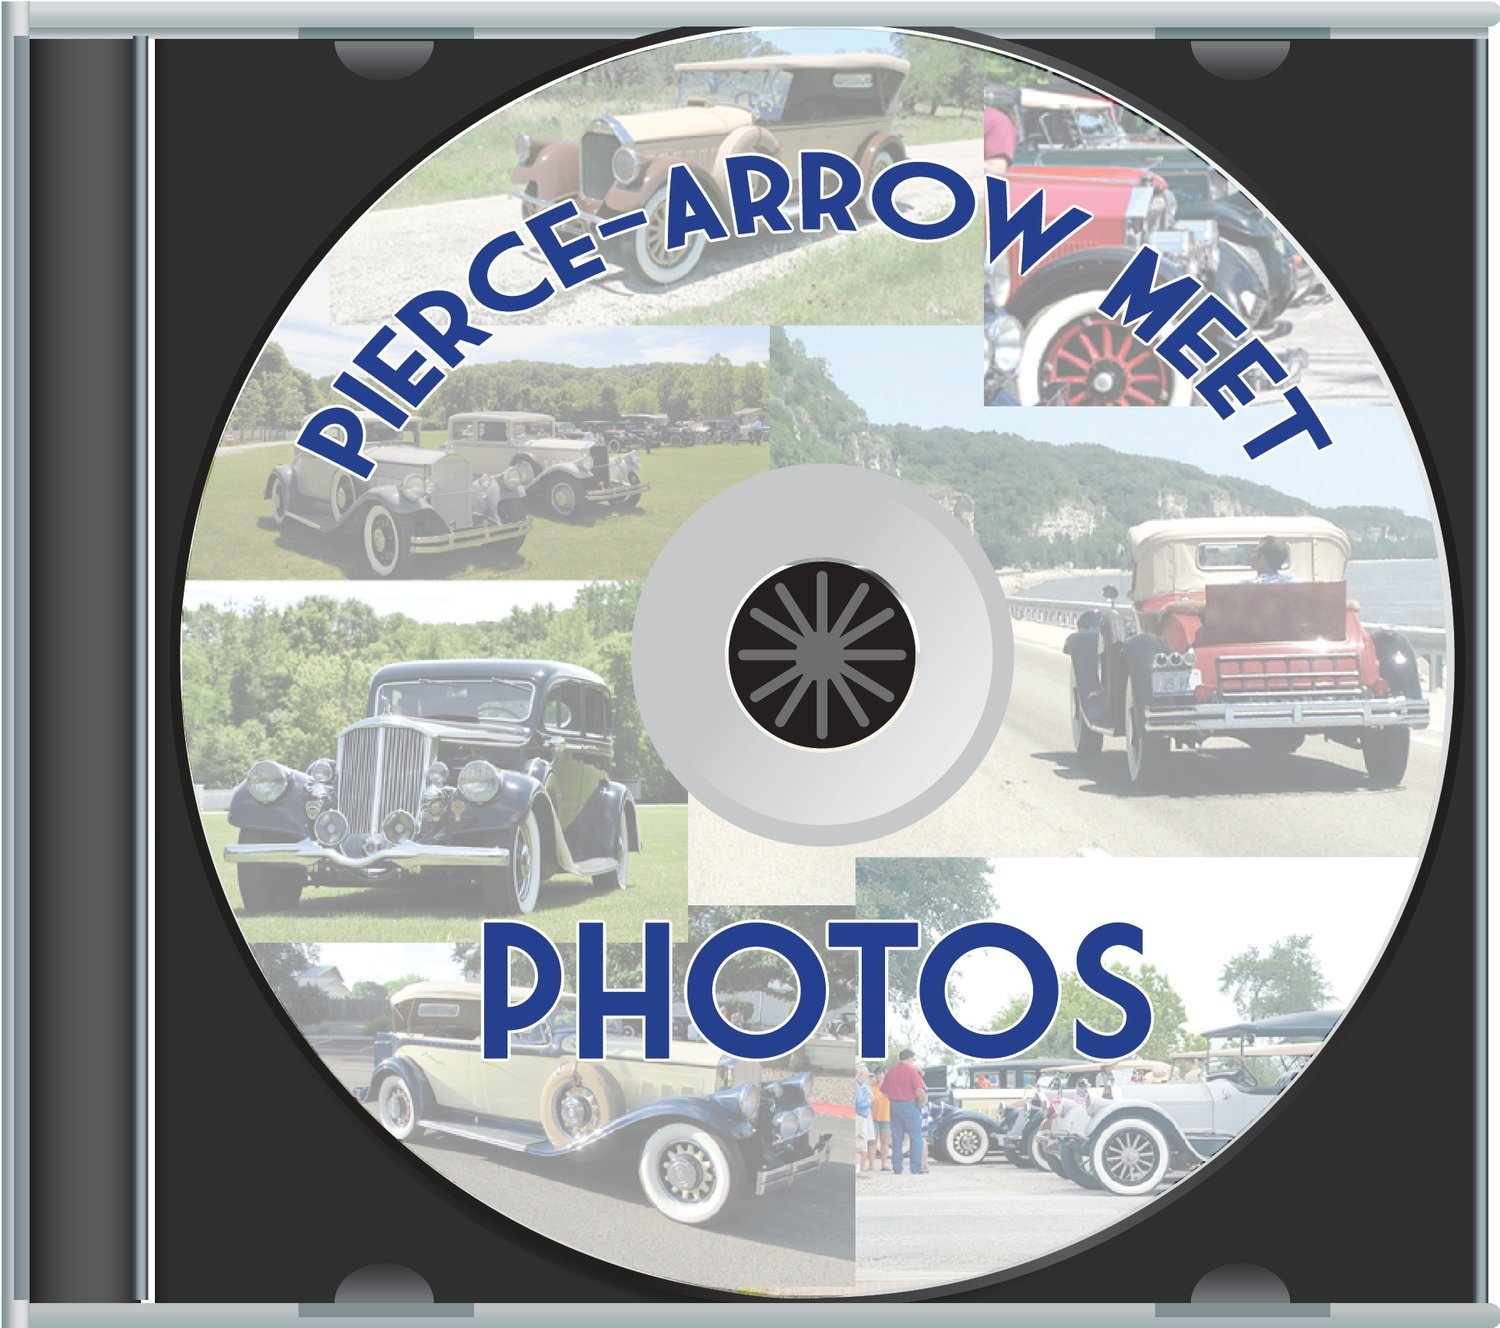 Pierce-Arrow Annual Meet Slide Show CDs